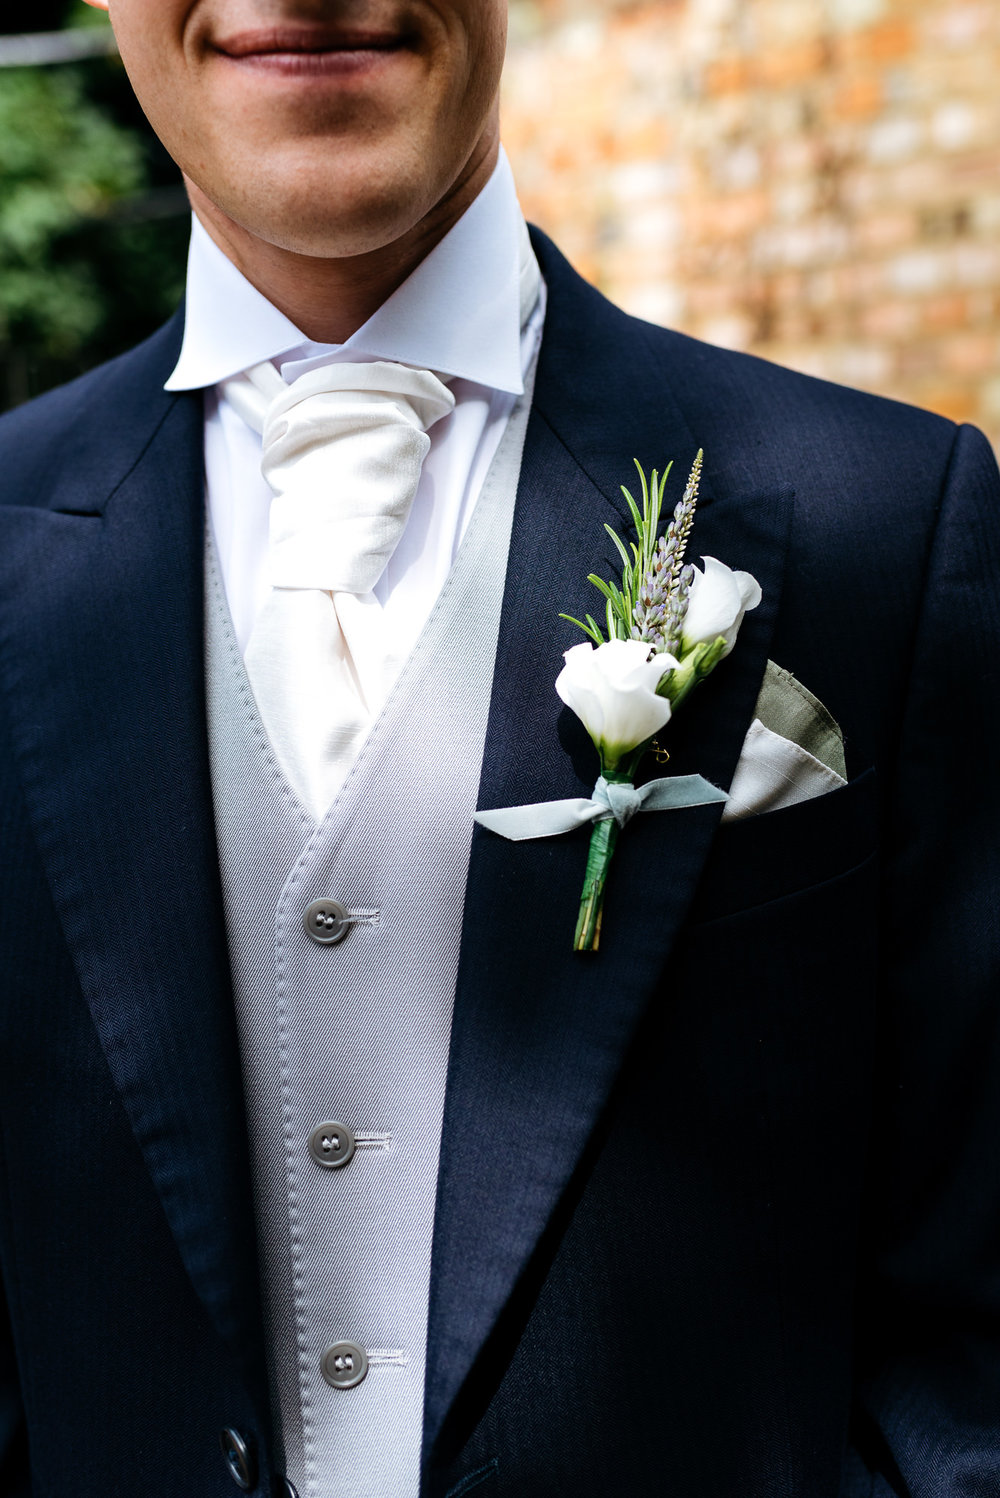 Groom at Narborough Hall Gardens